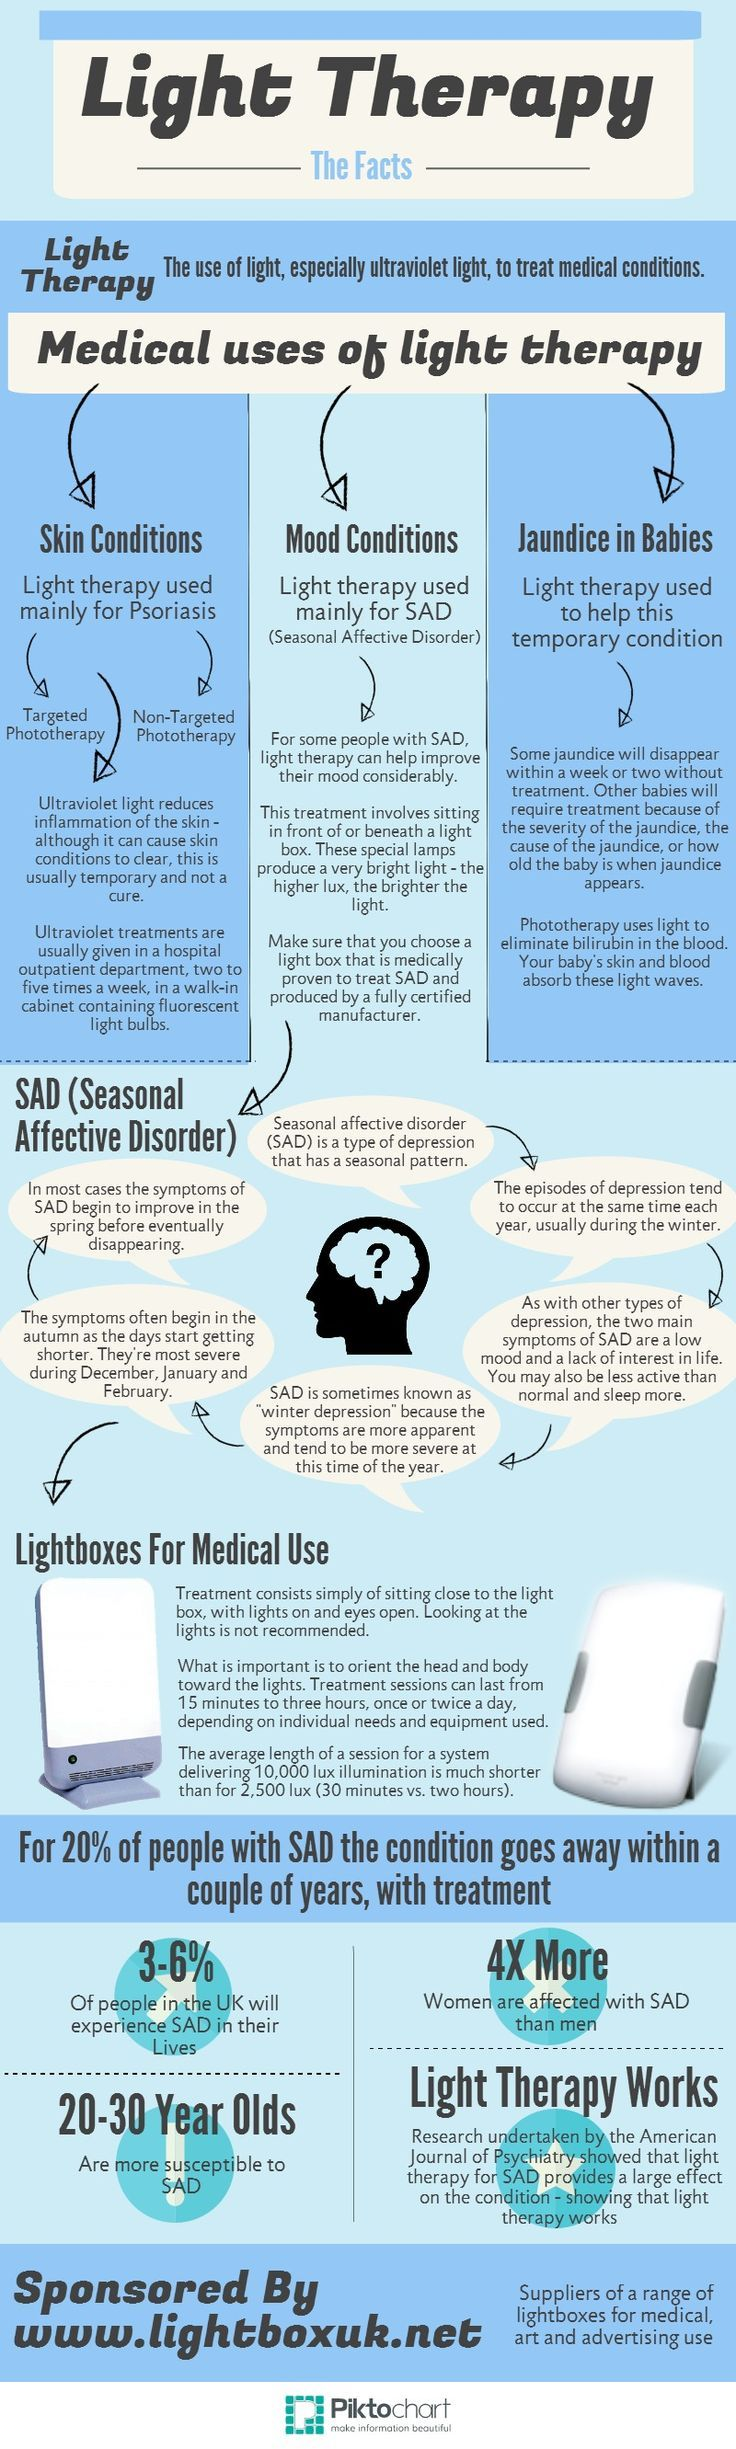 Light Therapy information My symptoms are physical, when the sun is out my symptoms go away within a day